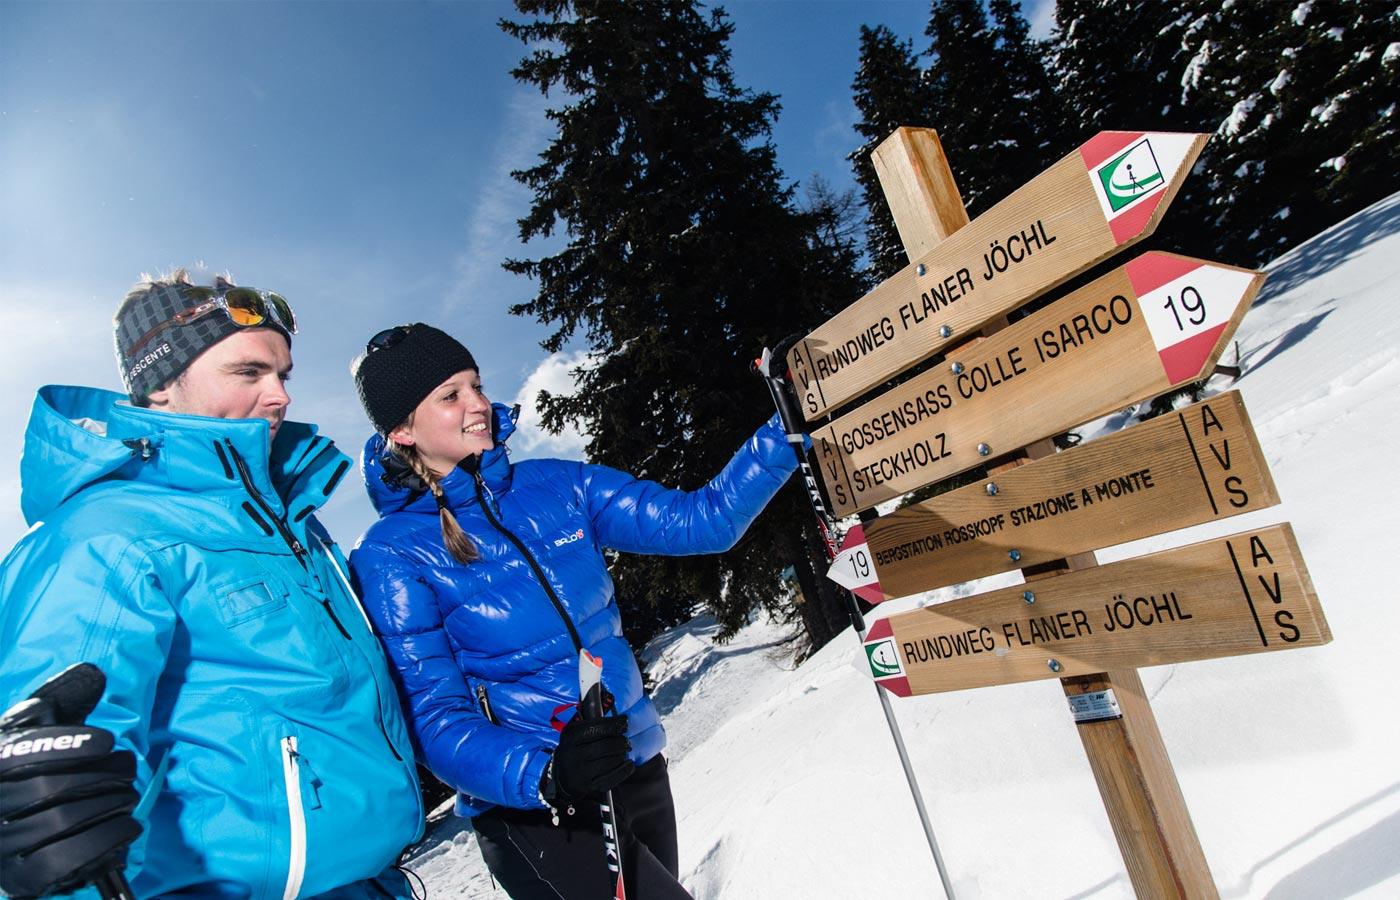 a young couple is standing next to signposts during a winter hike in the snow on the Rosskopf